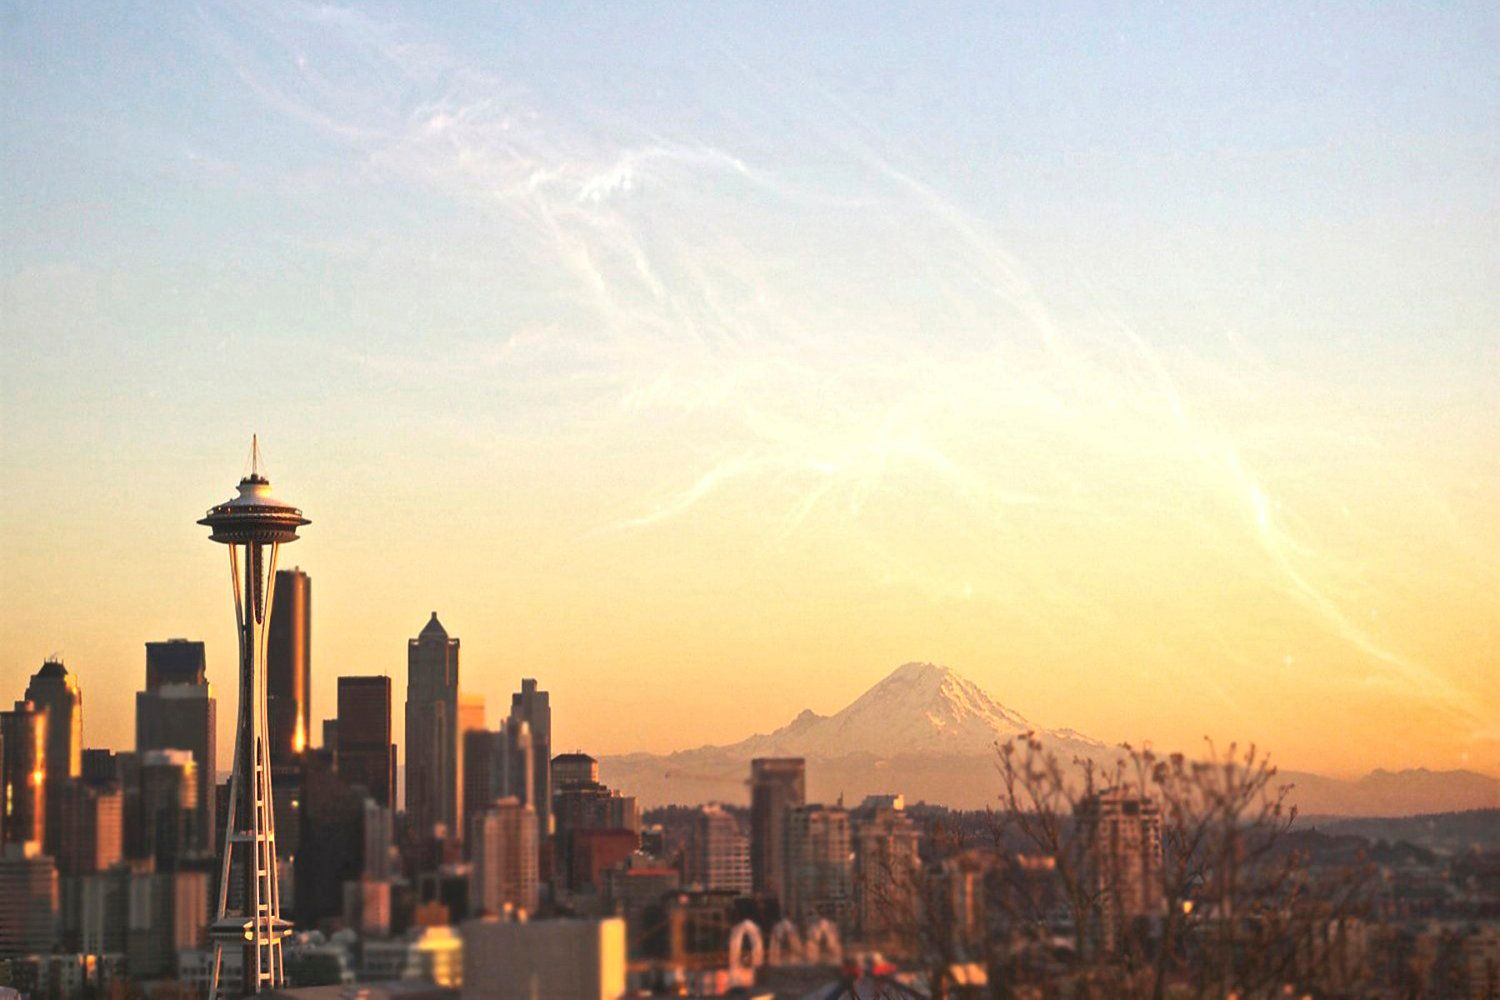 dropbox seattle office mt. Seattle Photography Skyline Space Needle Mount Rainier Sunset 4x6 Fine Art Print. $6.00, Dropbox Office Mt T